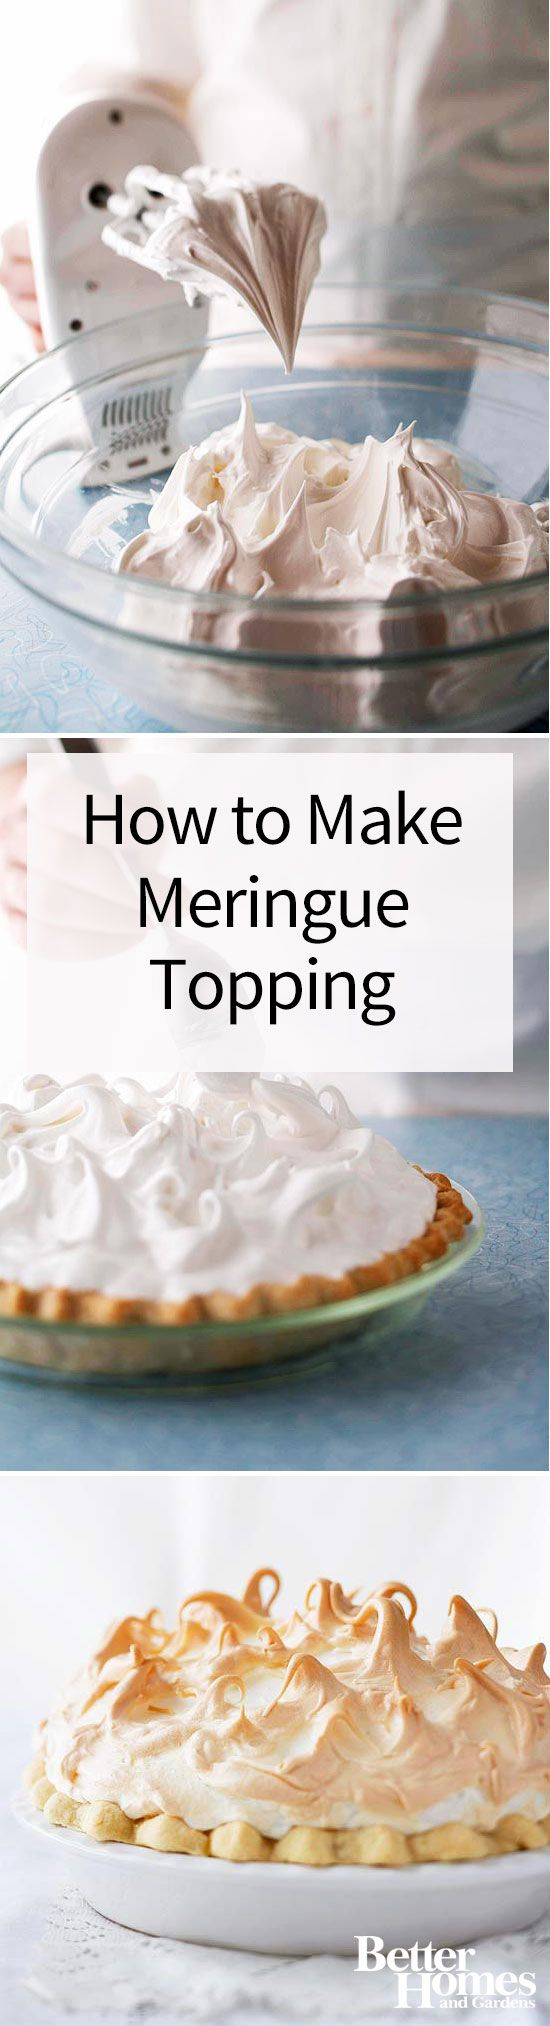 Follow this guide to help you create wonderful and tasty meringue topping for any pie! These step-by-step instructions make it simple and easy.